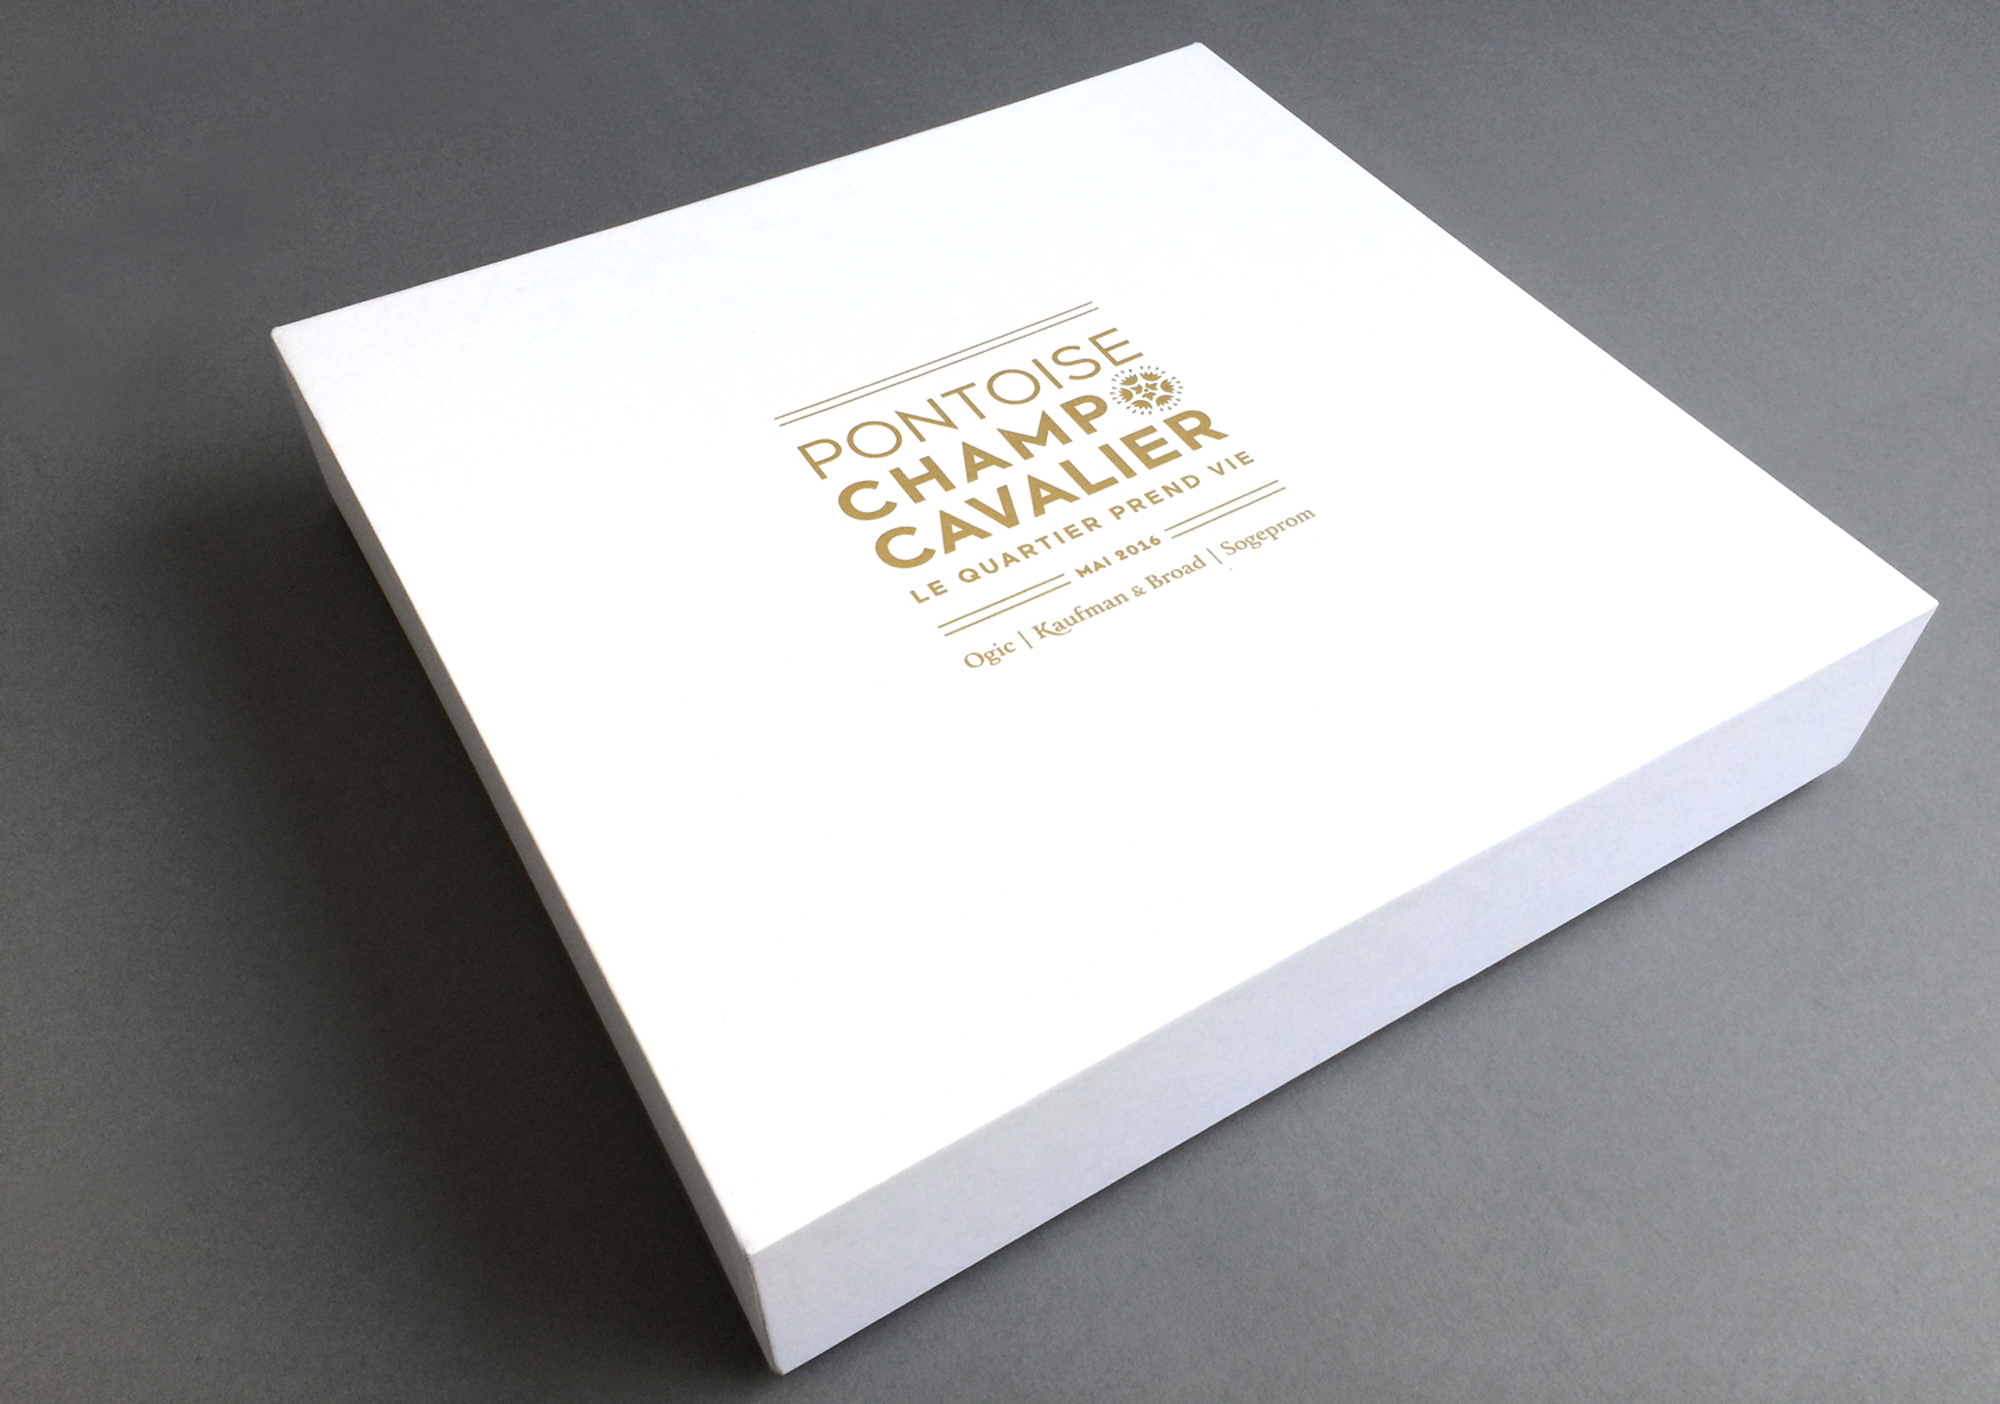 Coffret packaging Pontoise